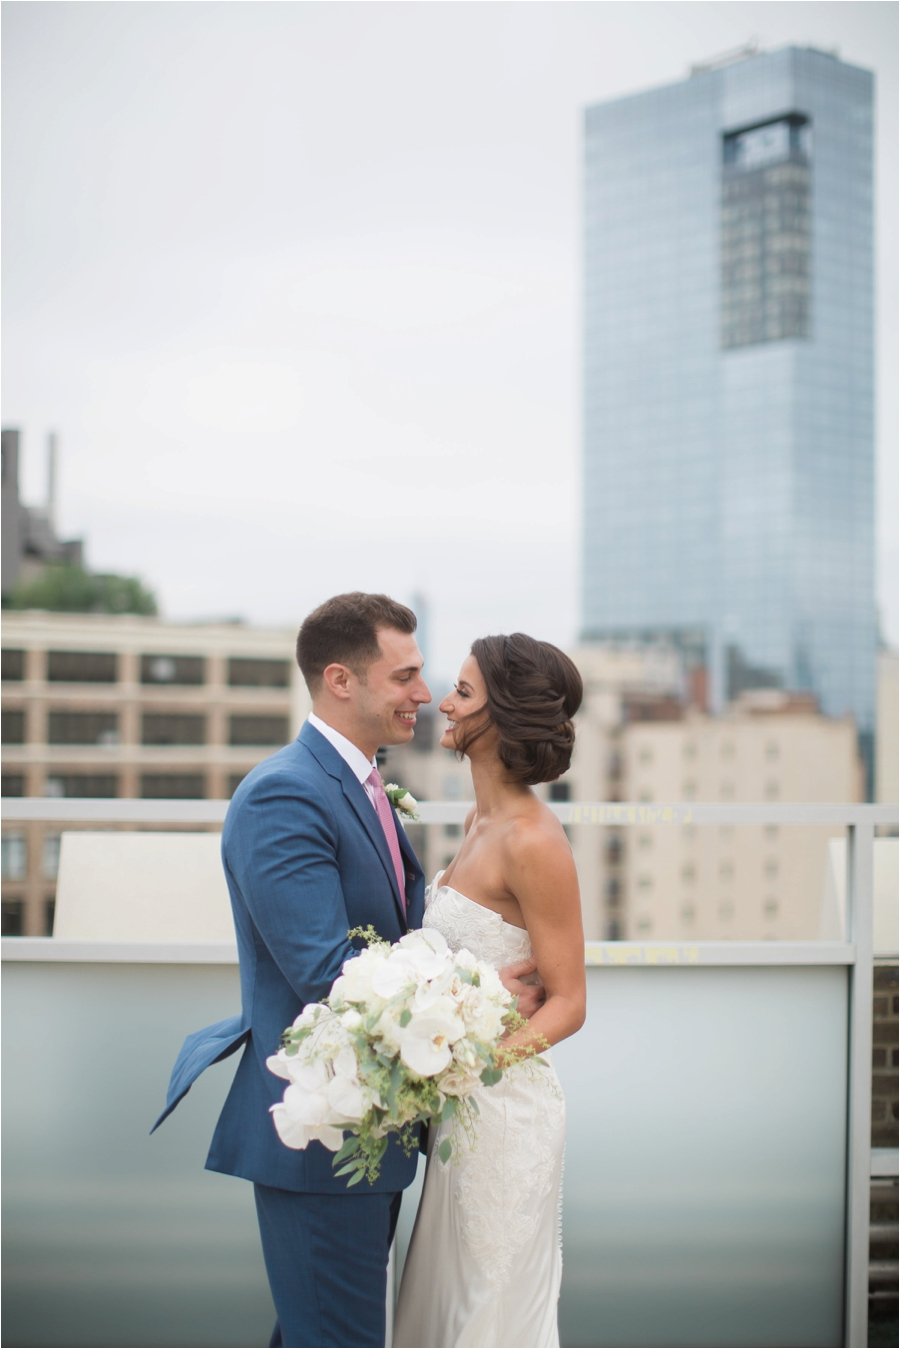 New-york-wedding-photographer-tribeca-rooftop-wedding_0947.jpg